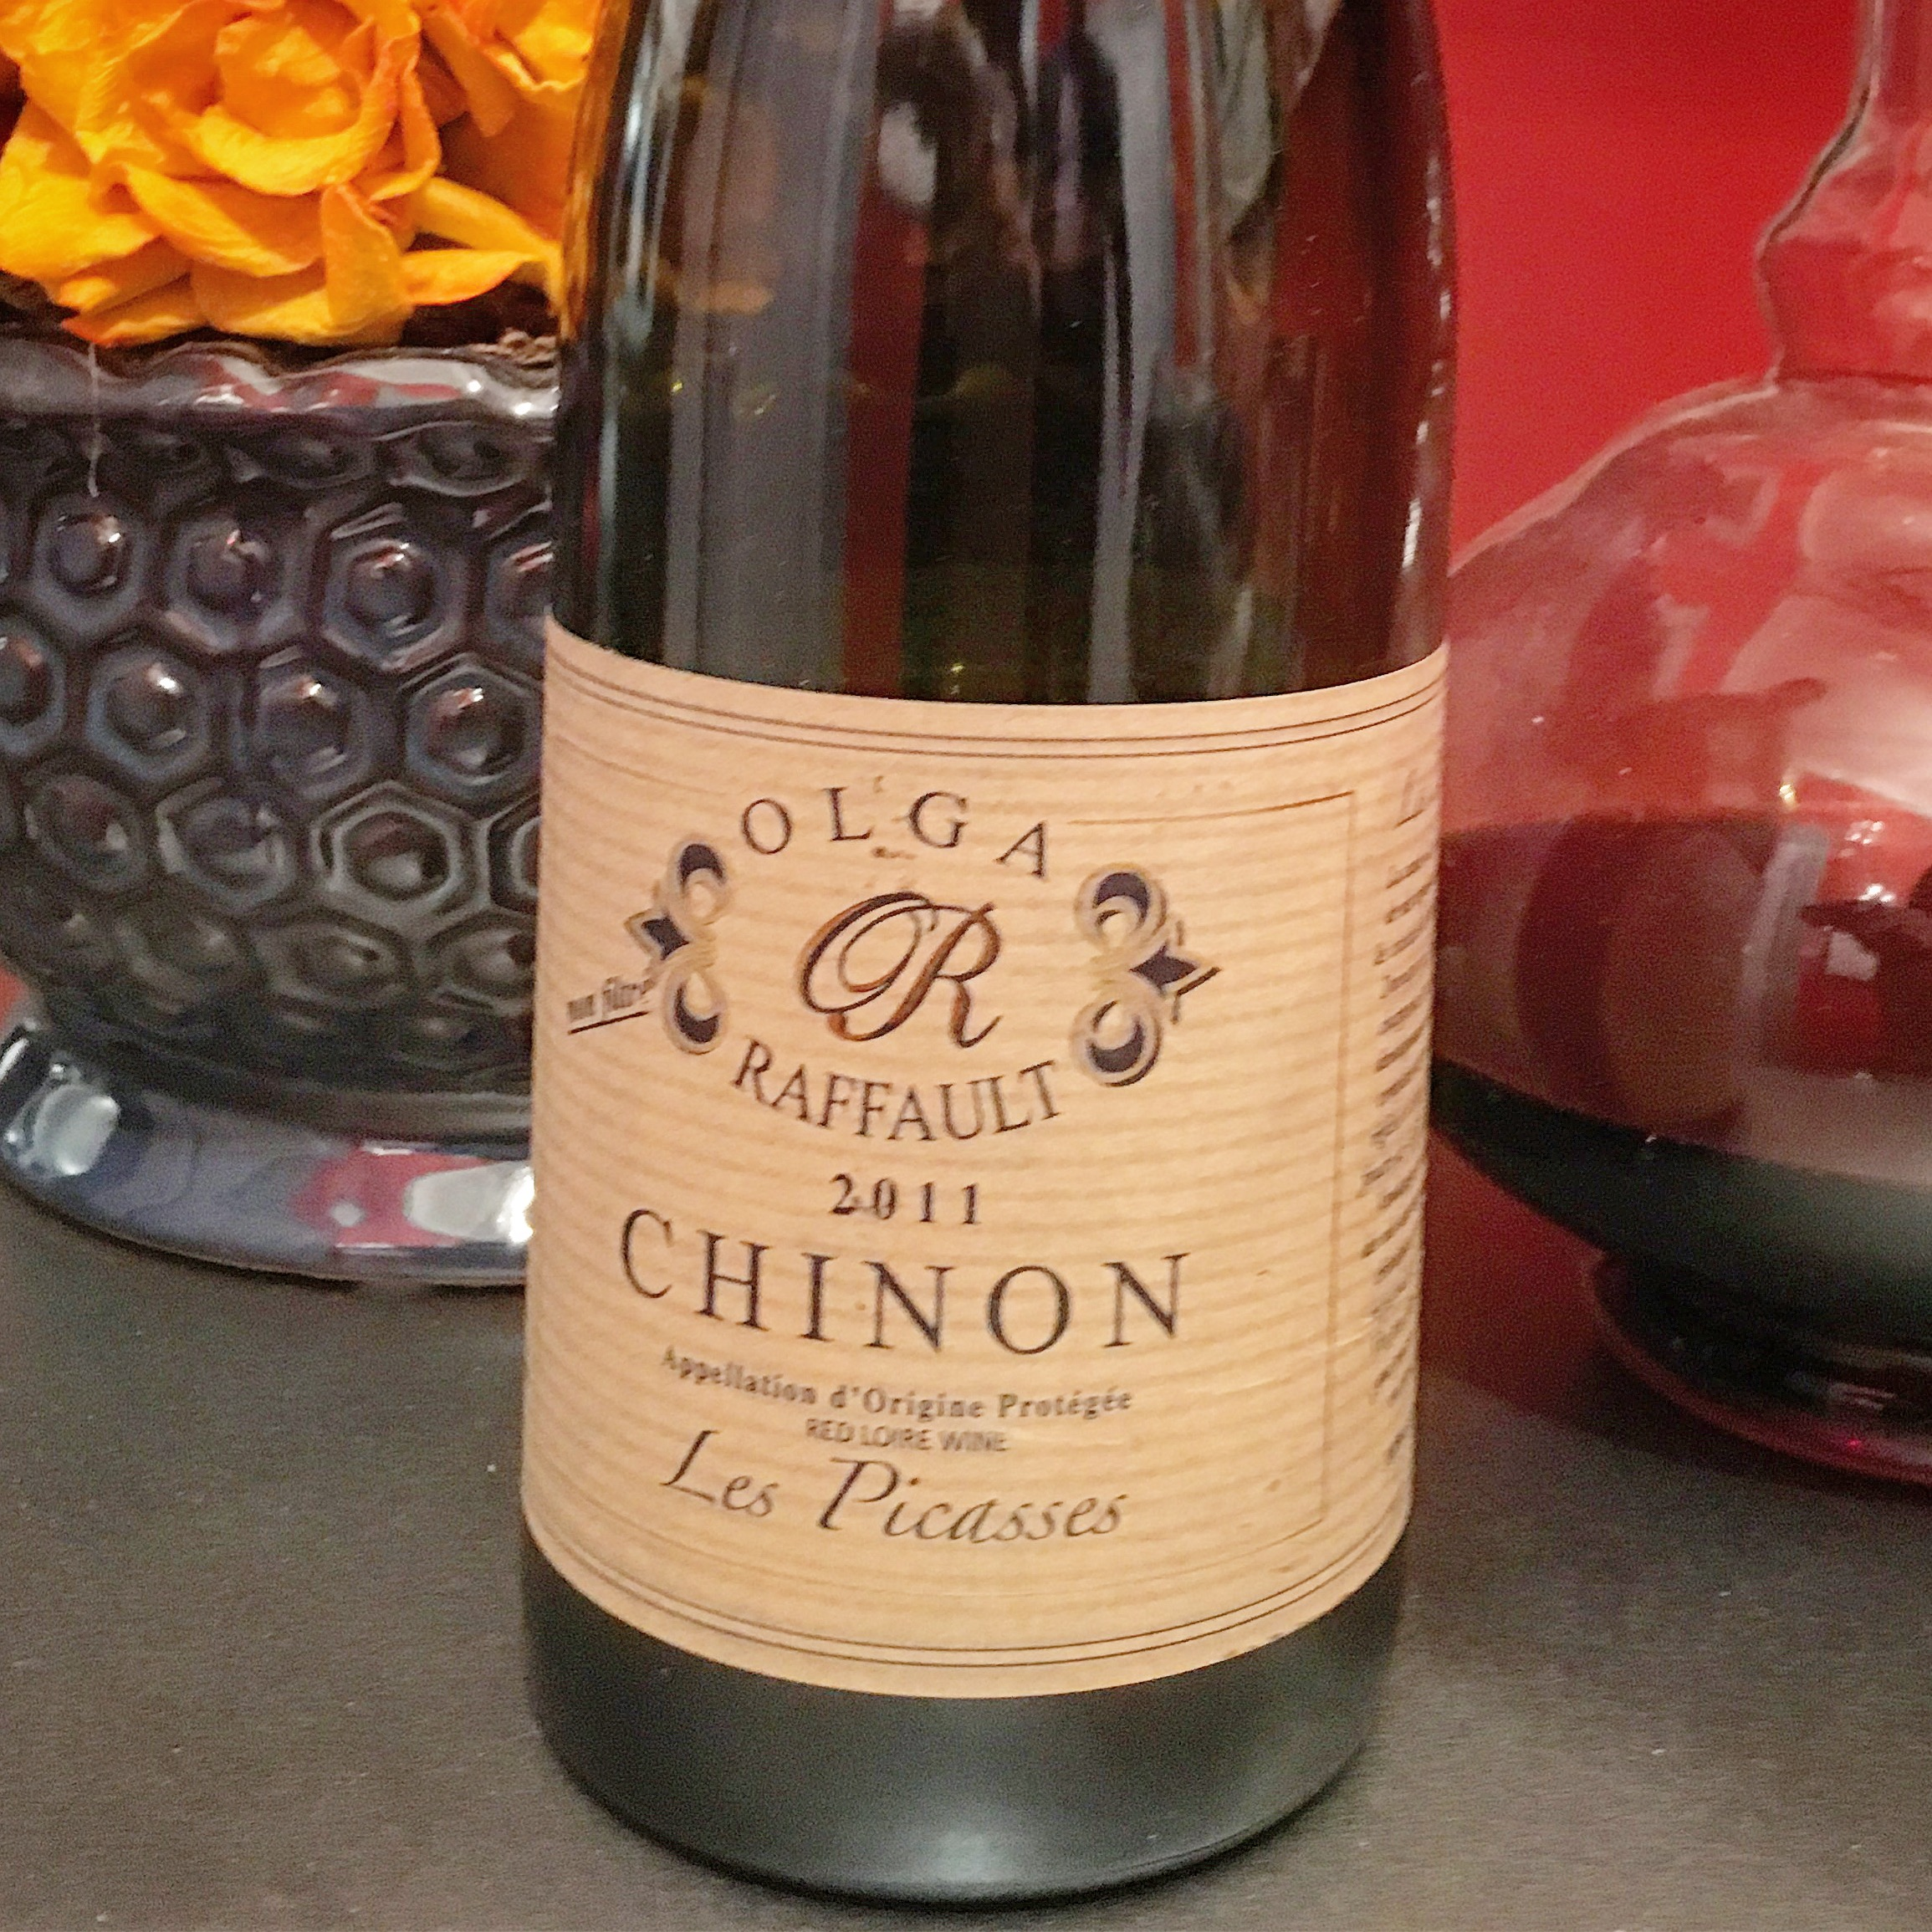 A 100% Cabernet Franc wine from Chinon In The Loire Valley